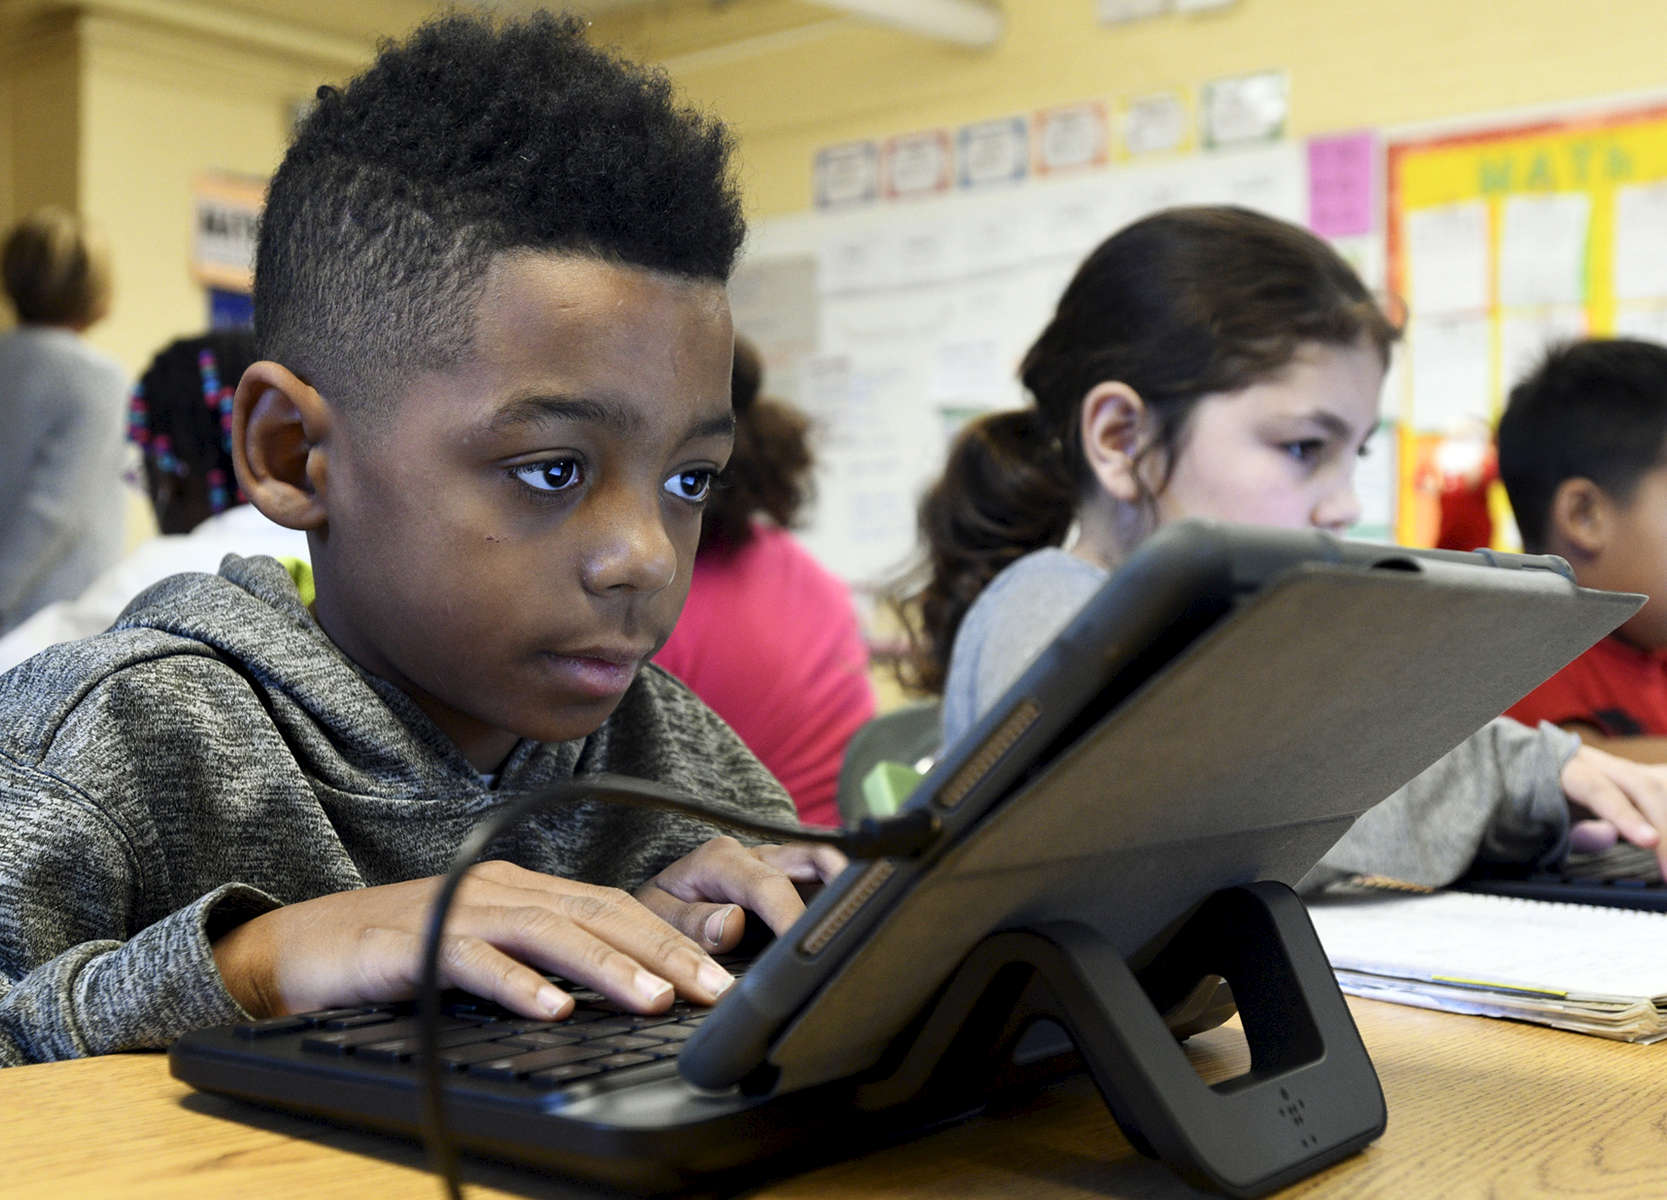 Union Hill School fourth-grader Trent LeShore, 9, works on his iPad on Friday, December 9, 2016. Worcester school committee members are contemplating taking action to reduce affects of wifi radiation on students and staff.